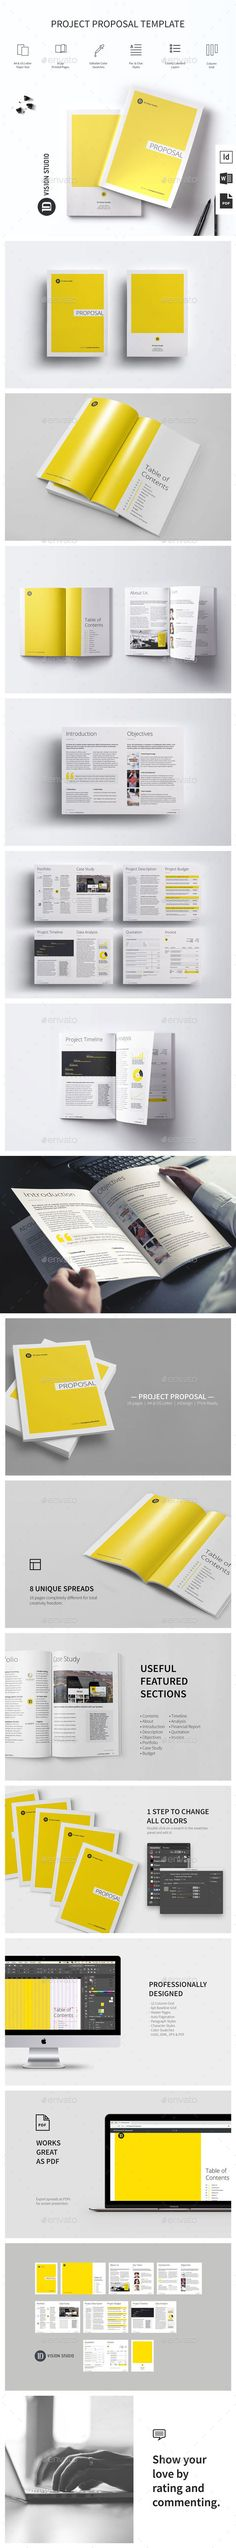 Project Proposal Template   Proposal Templates Project